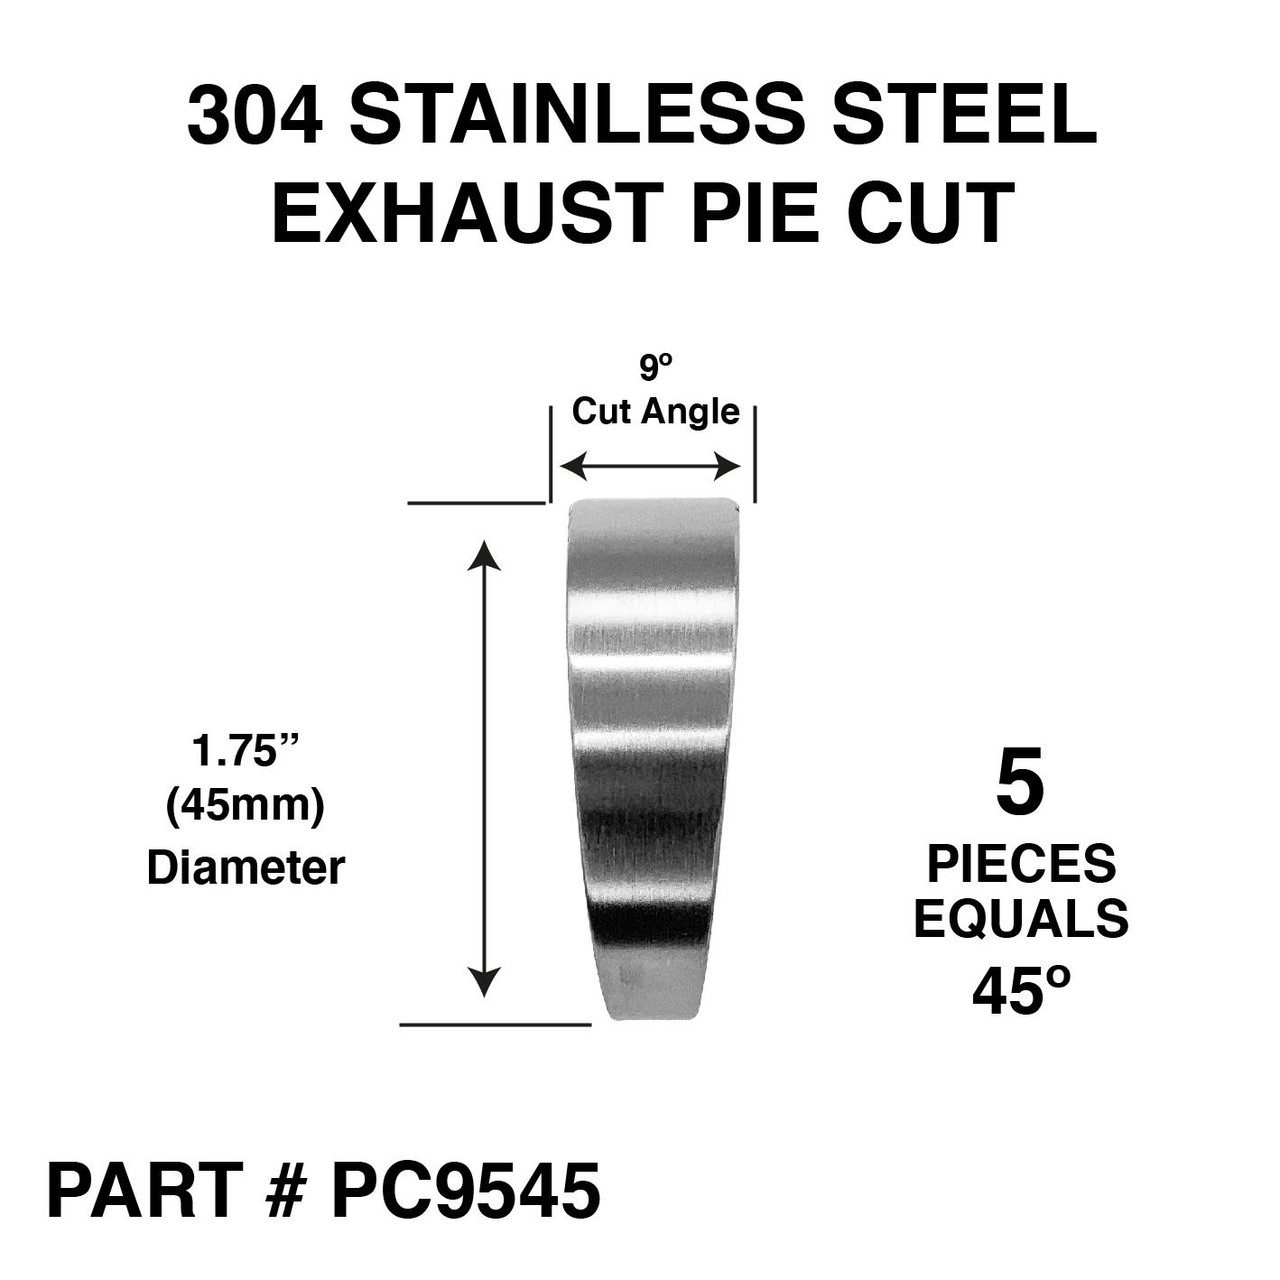 1 75 45mm pie cut 45 degree 304 stainless steel exhaust elbow bend